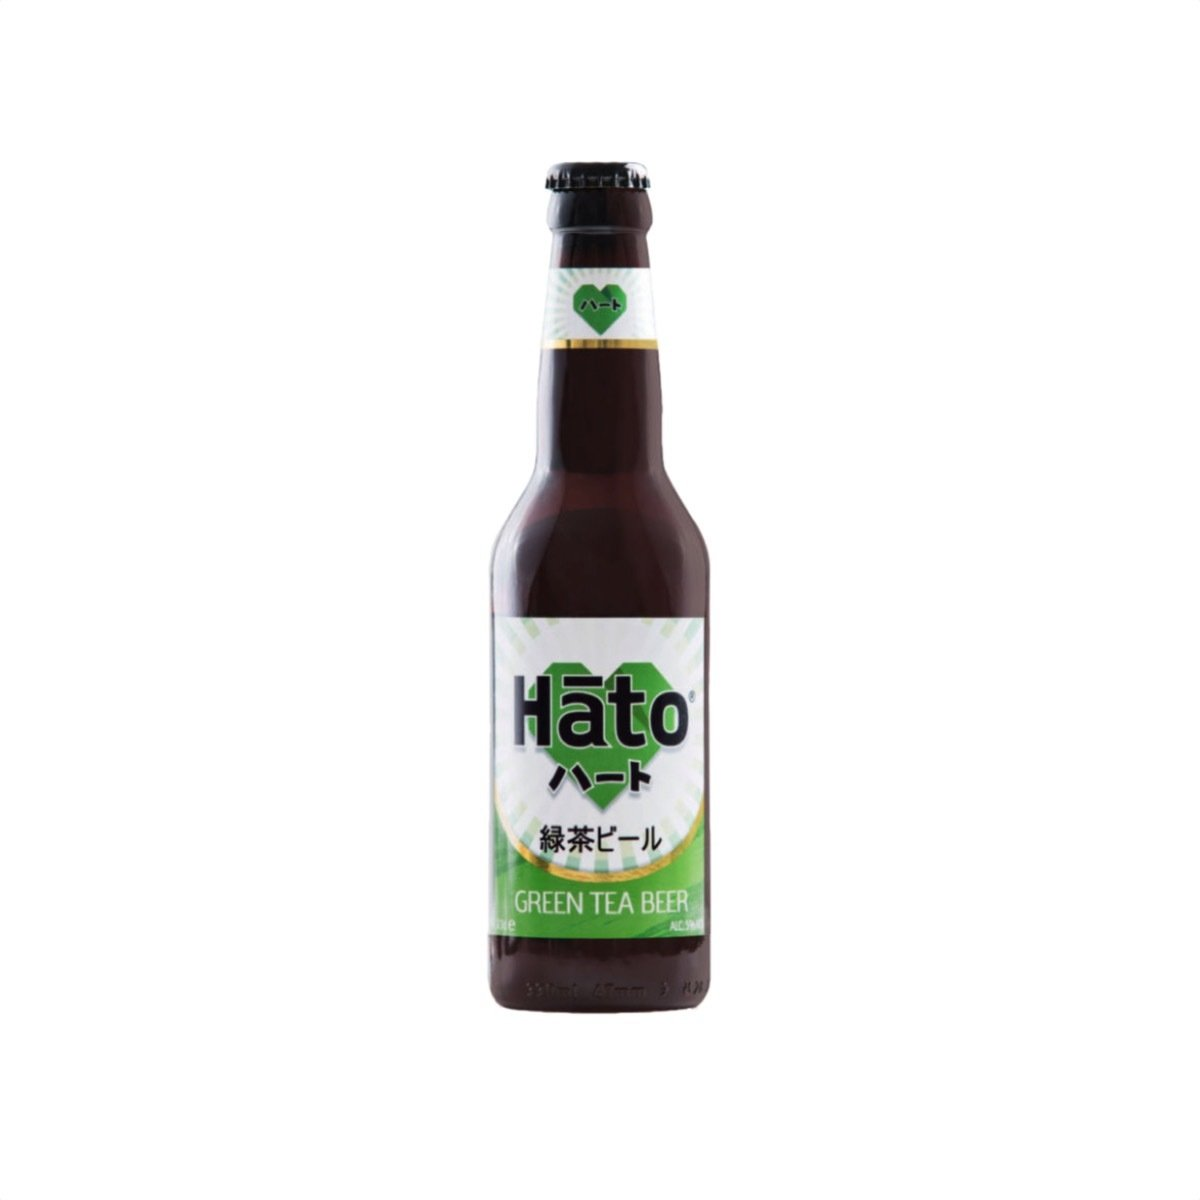 HATO / Green Tea Beer